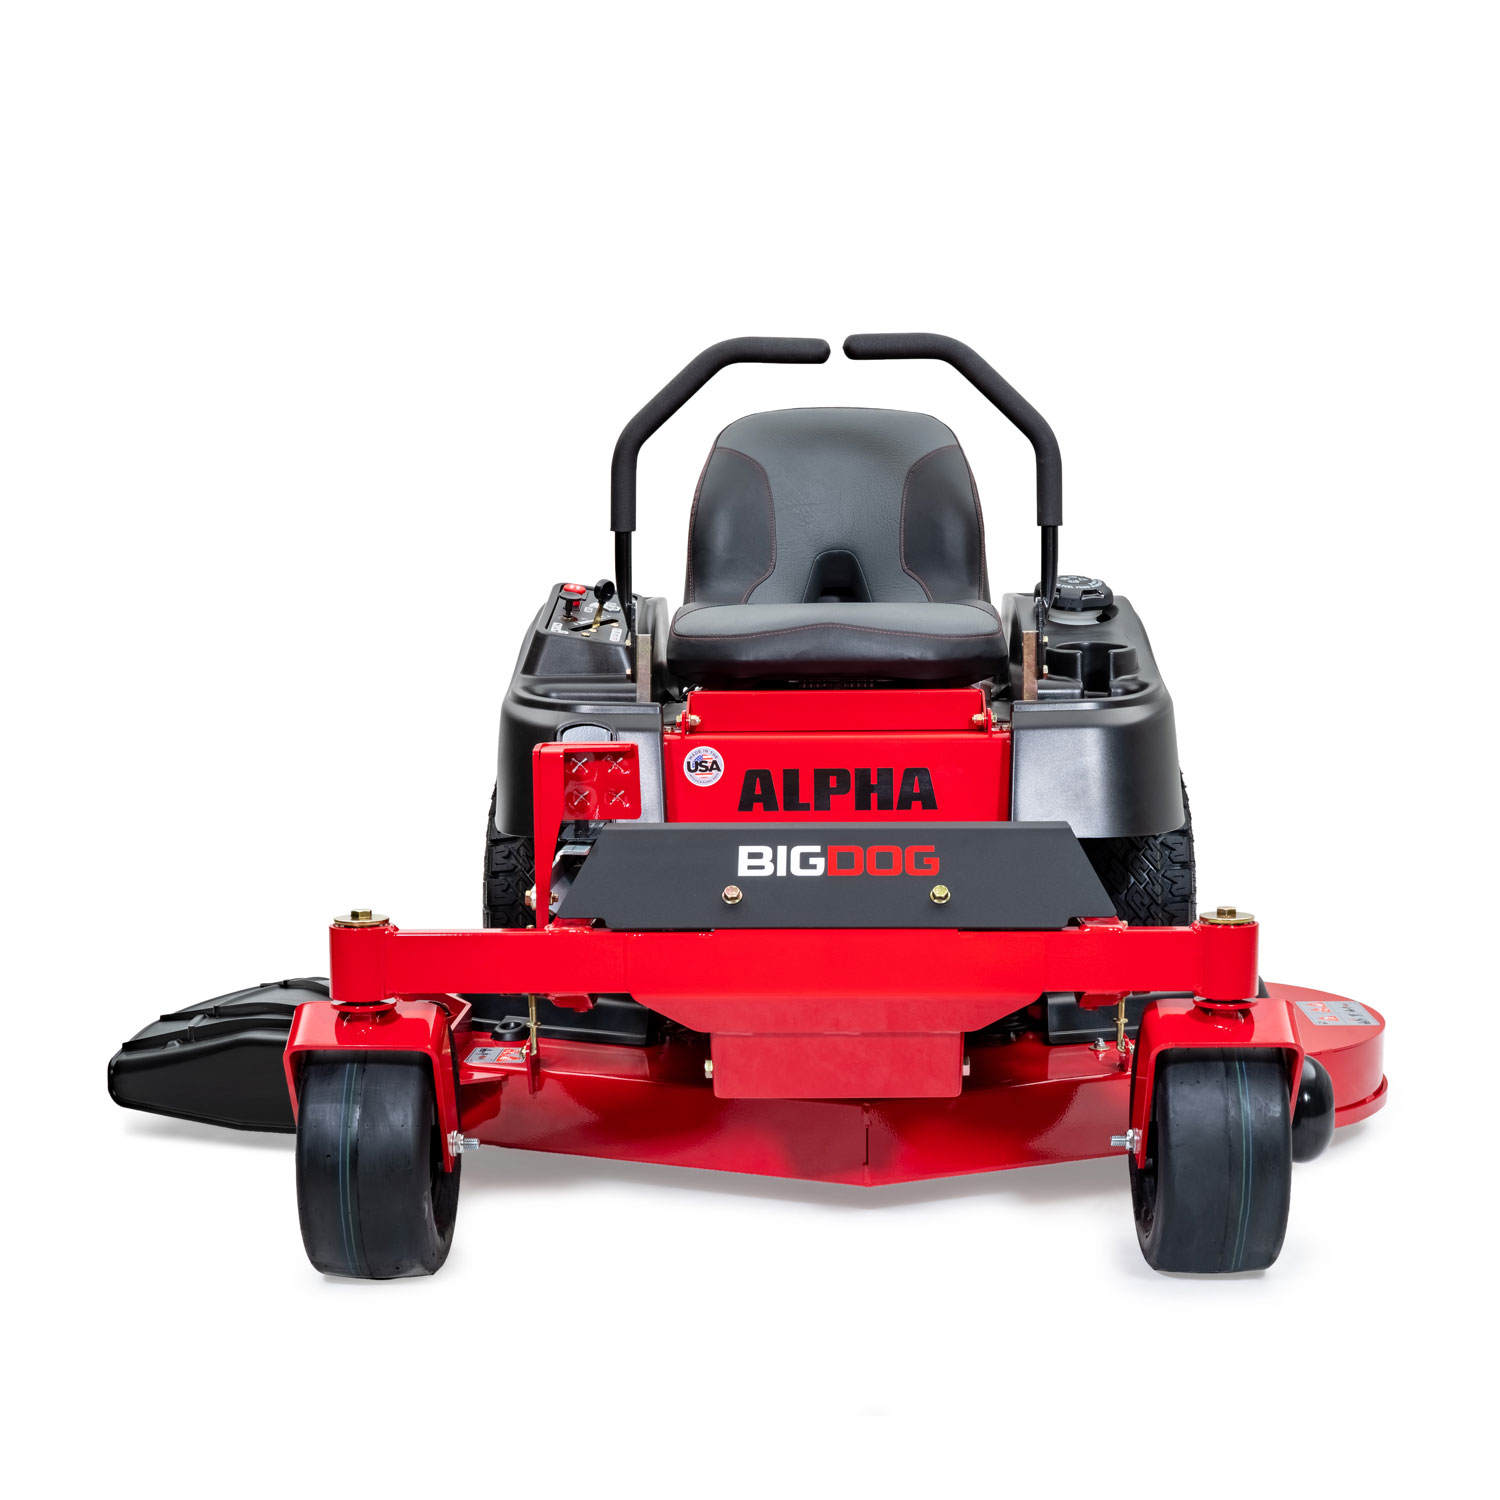 Image of the front of a red BigDog mower